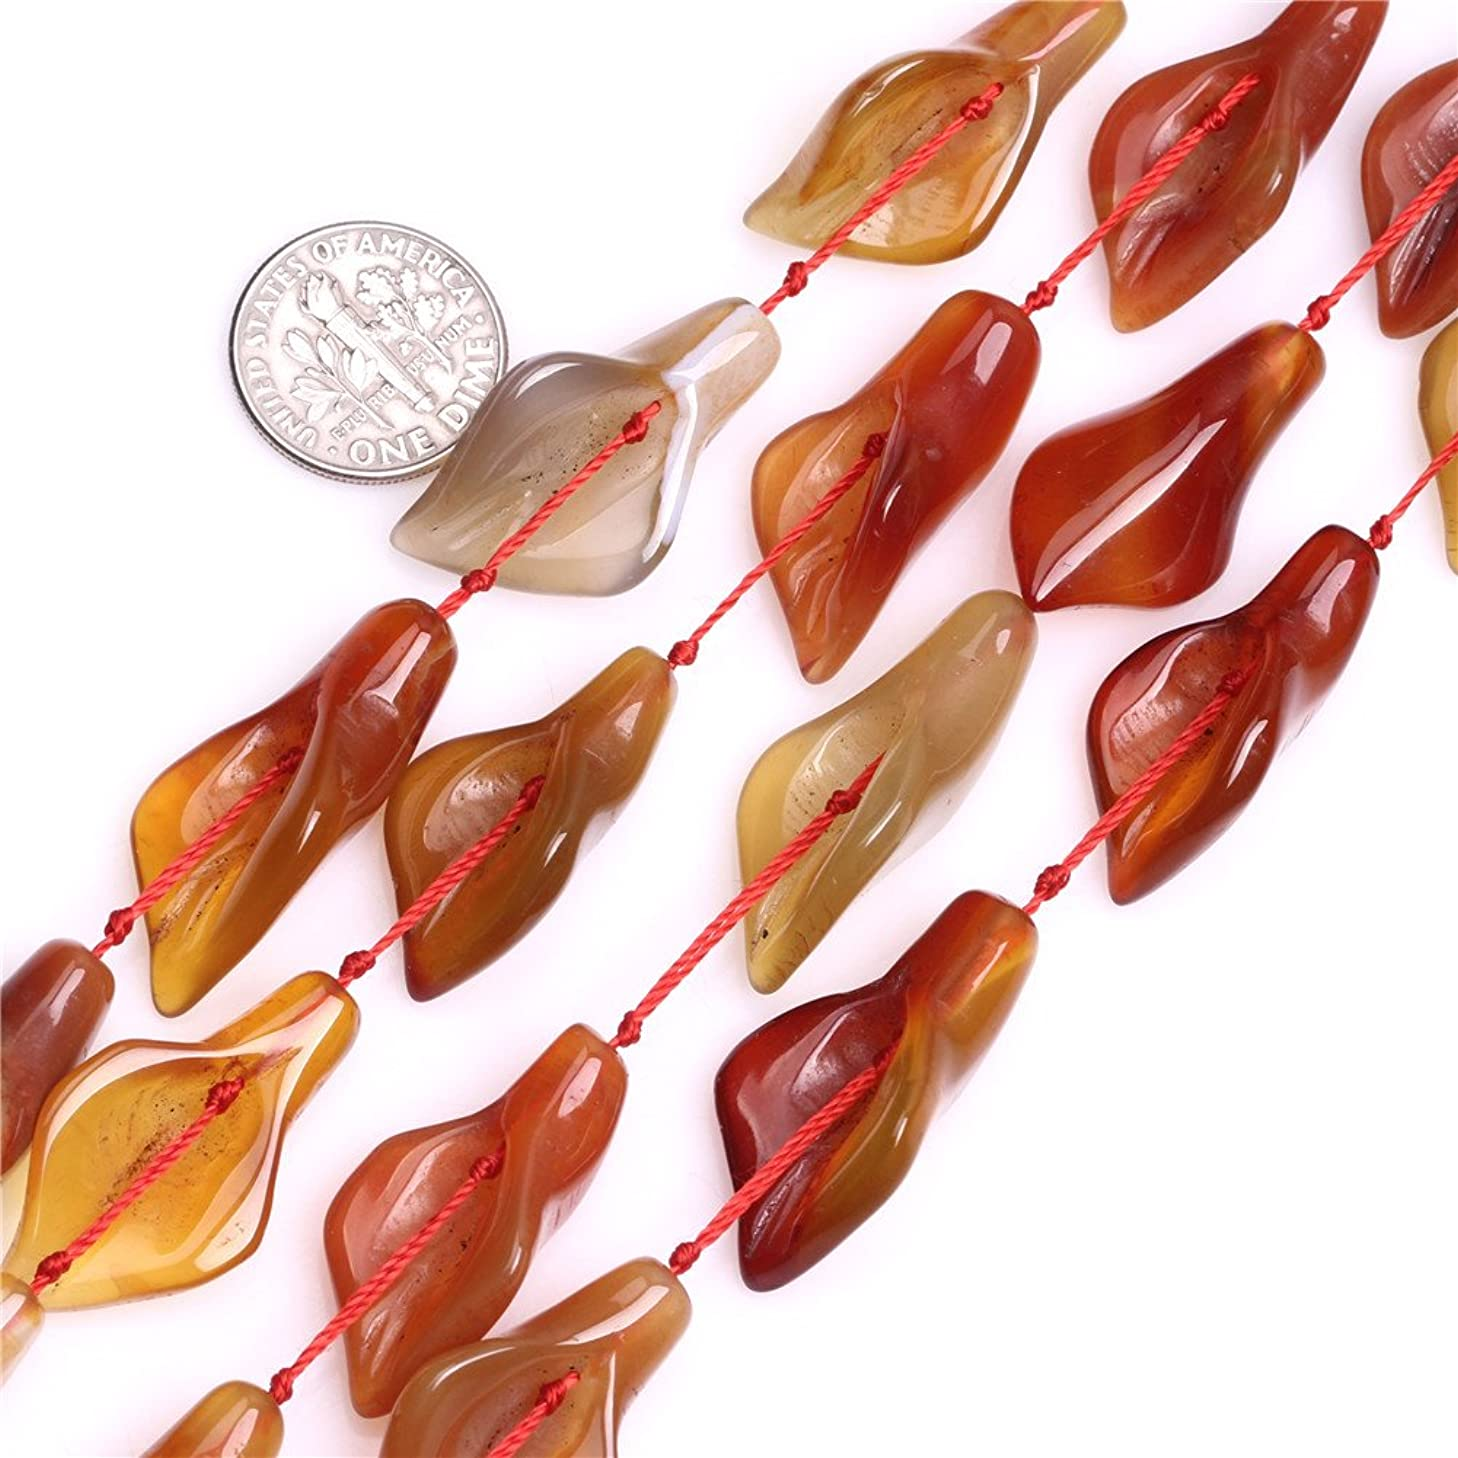 Red Carnelian Beads for Jewelry Making Natural Gemstone Semi Precious 14x28mm Calla Lily Flower Shape 13 Pcs JOE FOREMAN